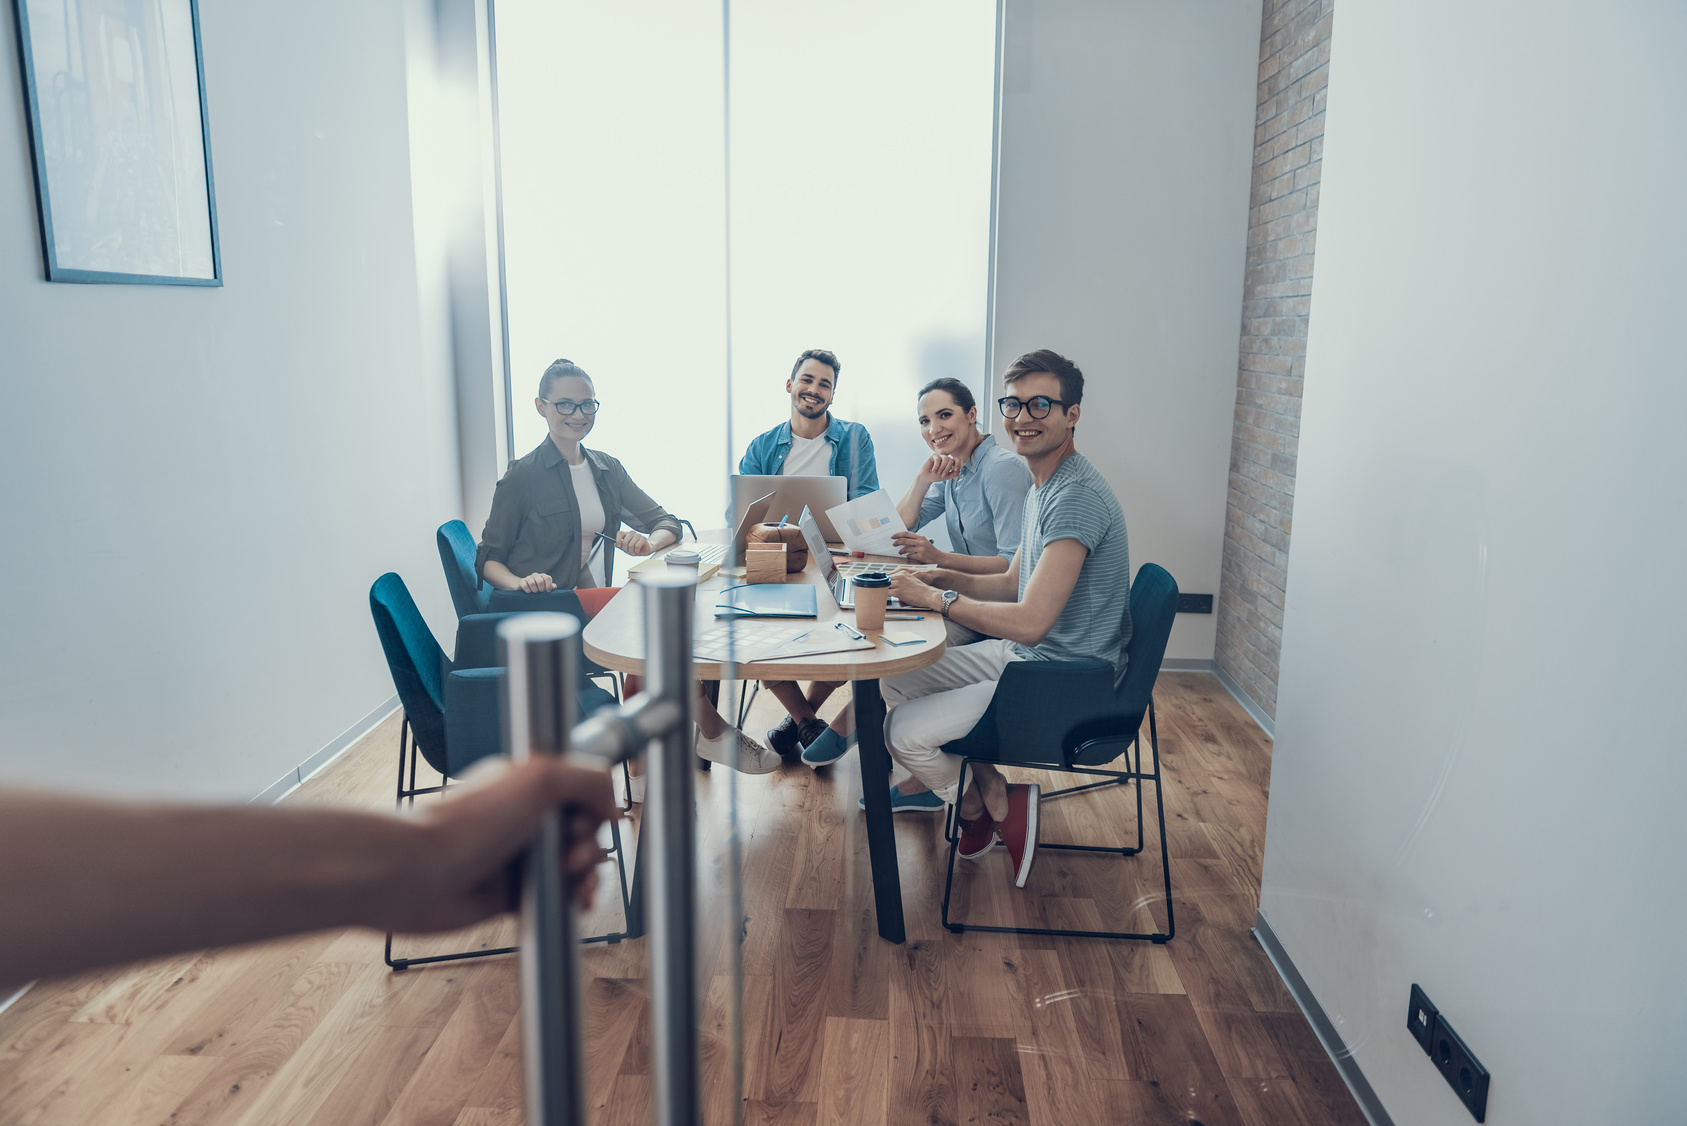 Full length portrait of four happy coworkers sitting at wooden desk and looking on glass door. Copy space in right side